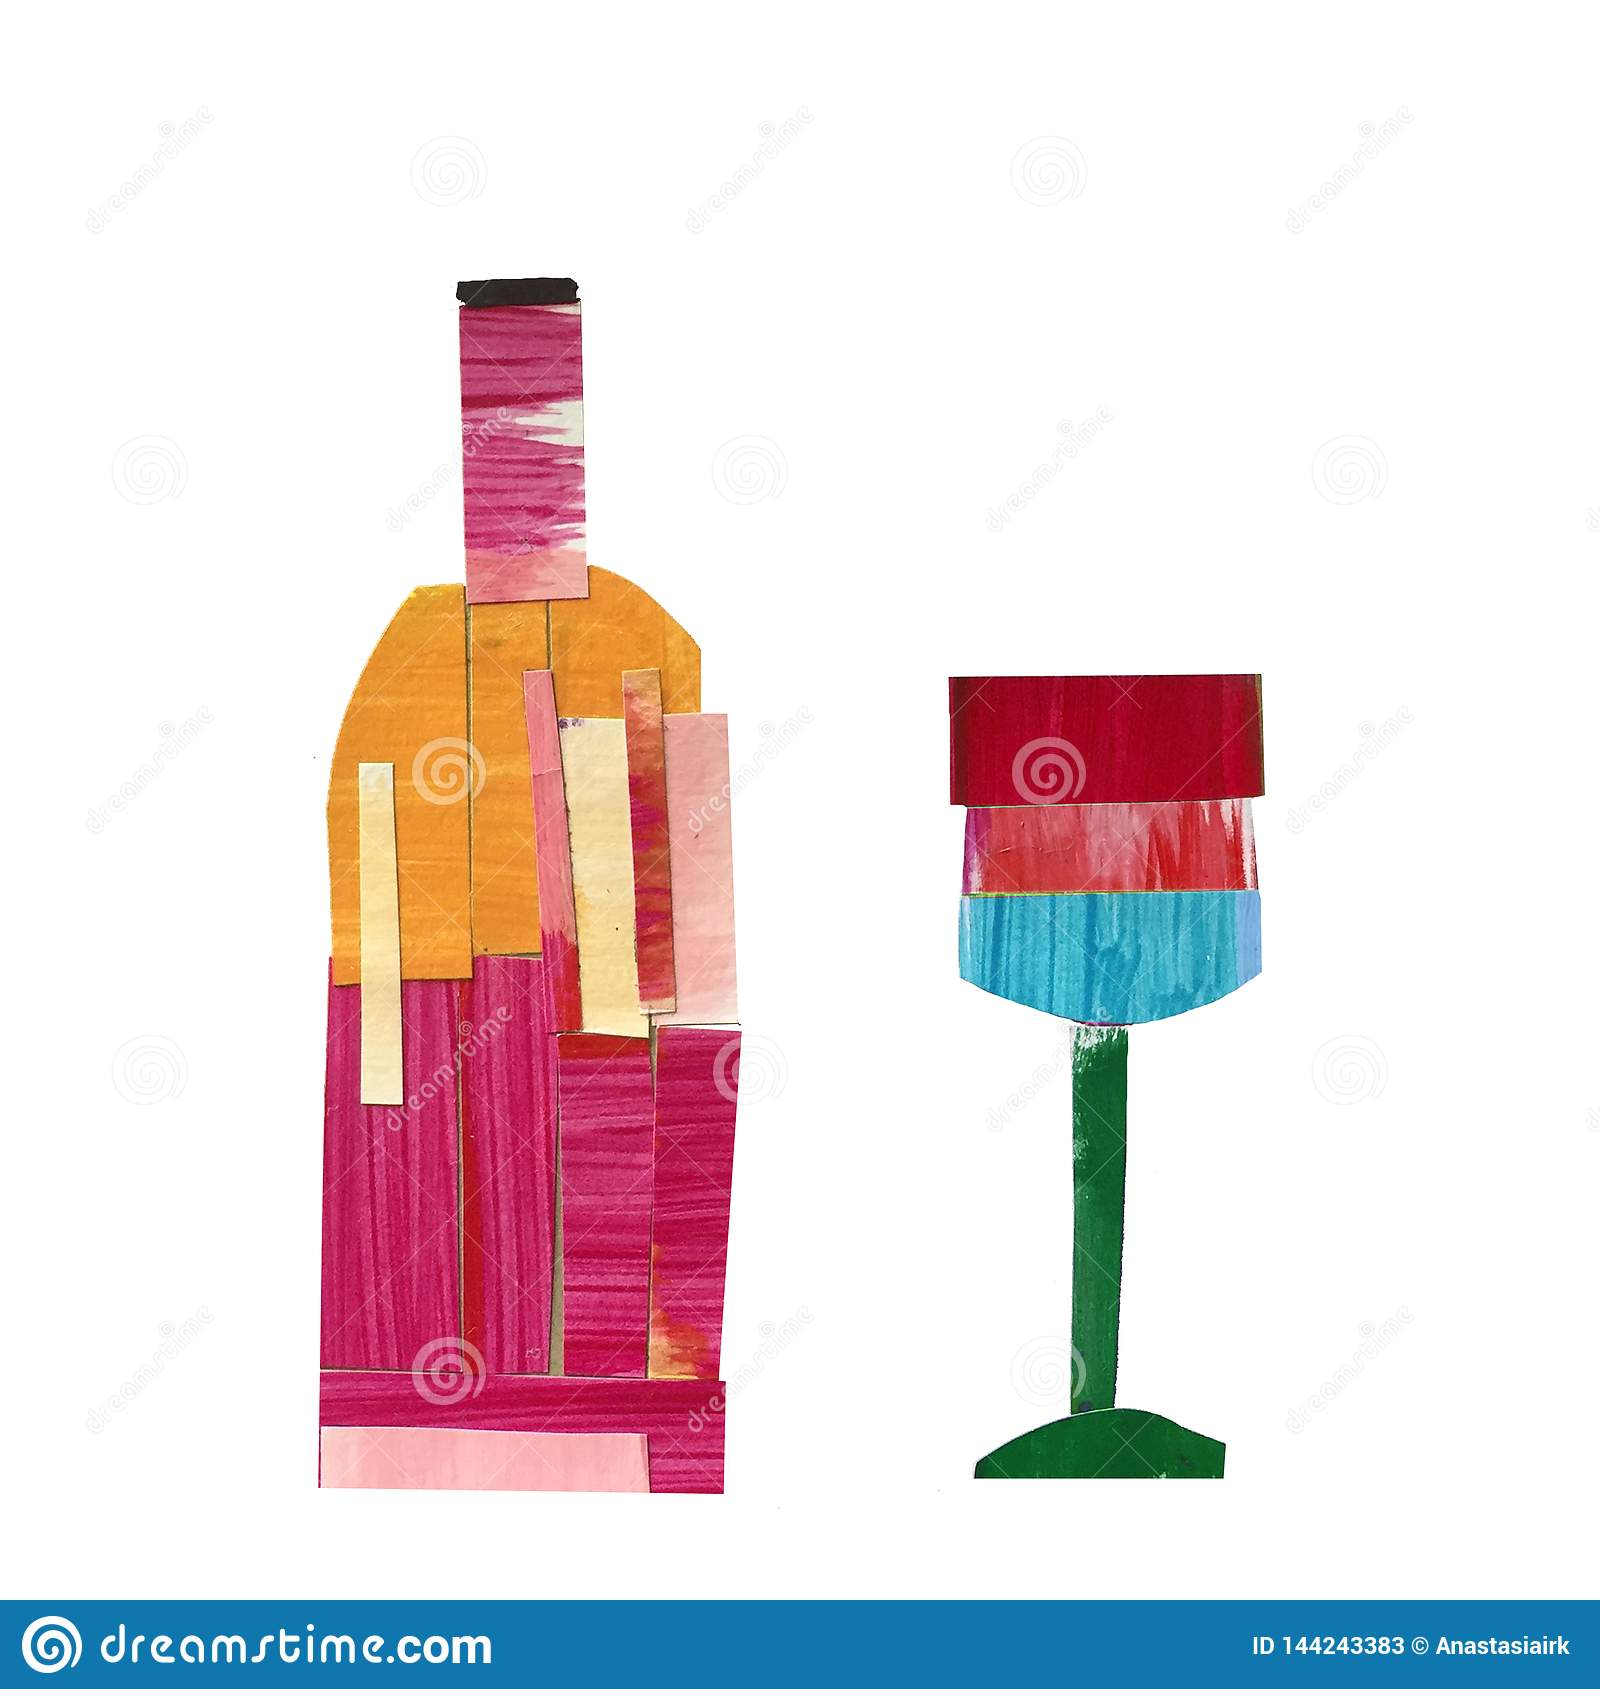 Bottle of wine with a glass in the technique of collage